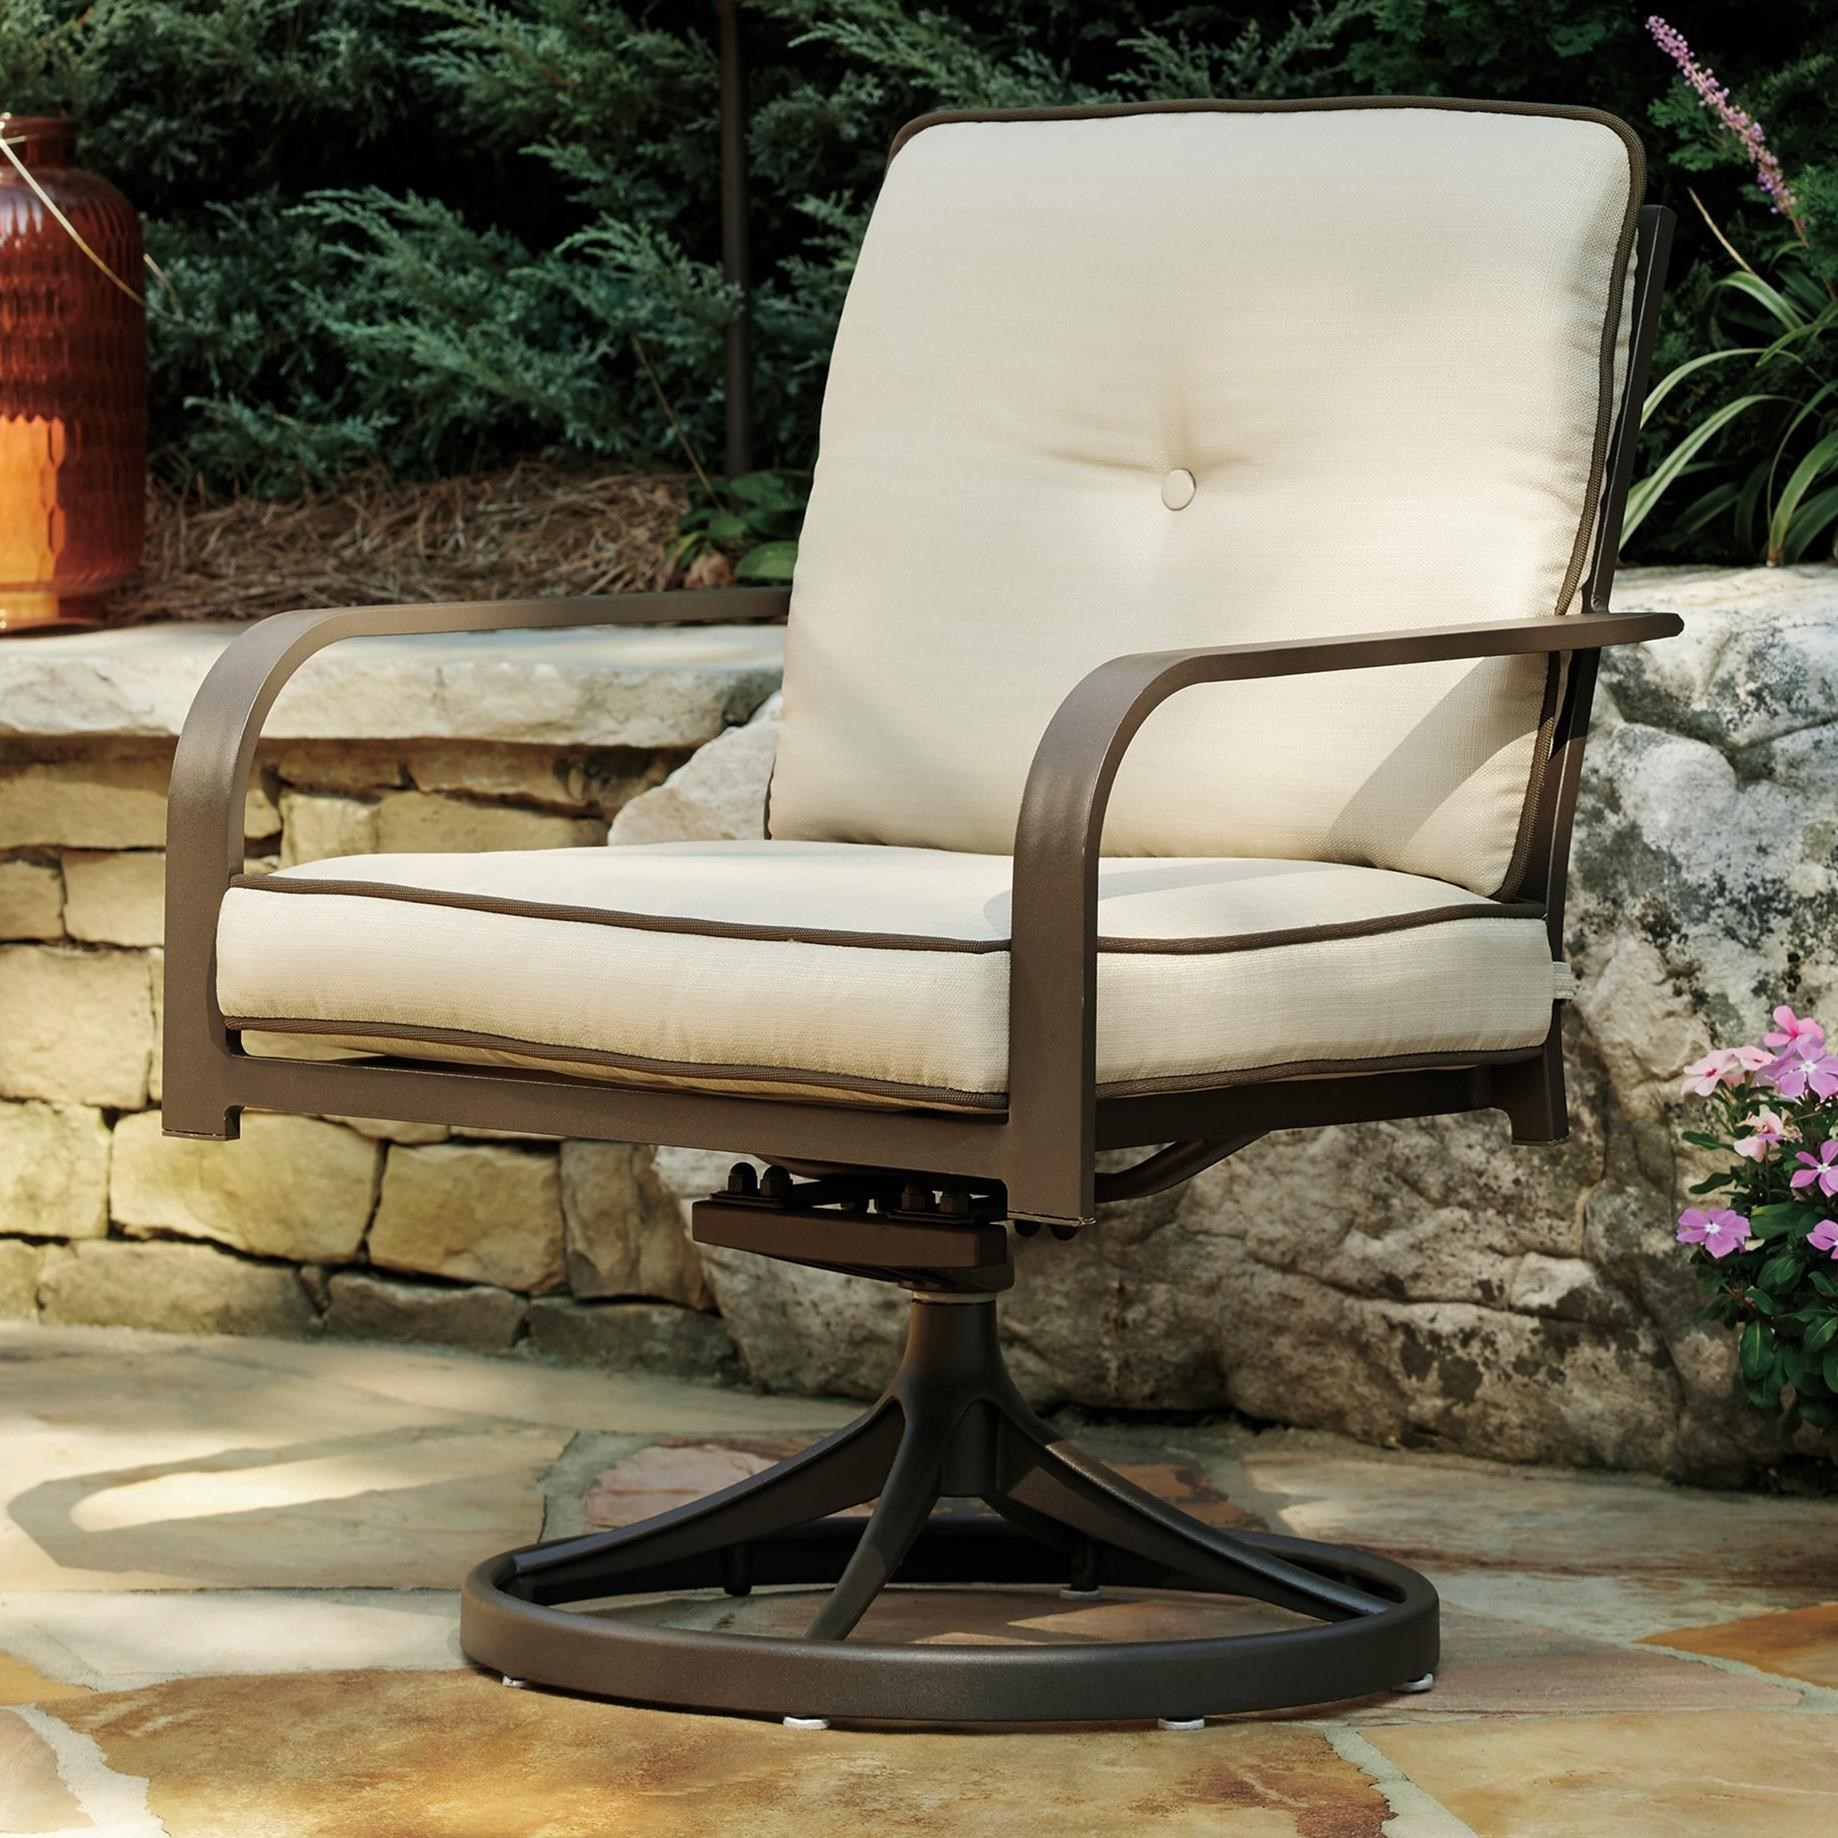 Predmore Set of 2 Swivel Lounge Chairs by Signature Design by Ashley at Lapeer Furniture & Mattress Center